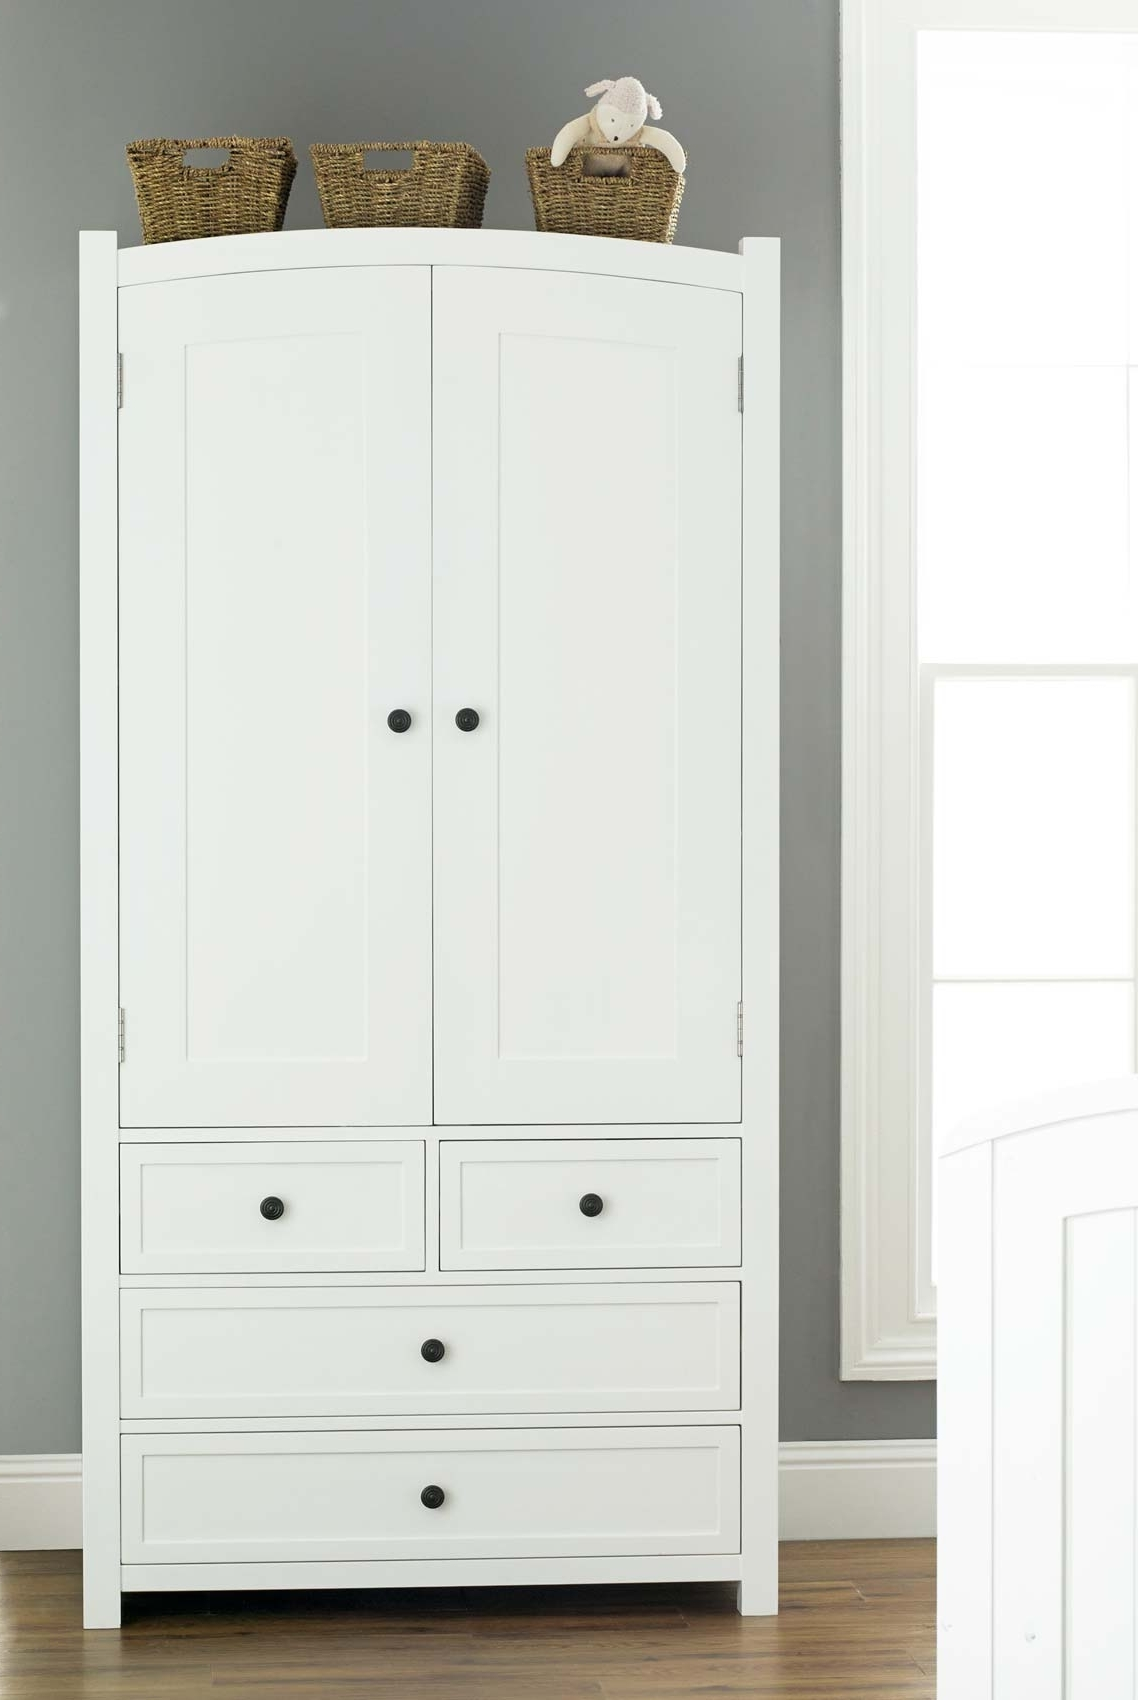 White Wicker Wardrobes With Widely Used Ceiling To Floor White Wooden Wardrobe Closet With Ladder Shelves (View 3 of 15)